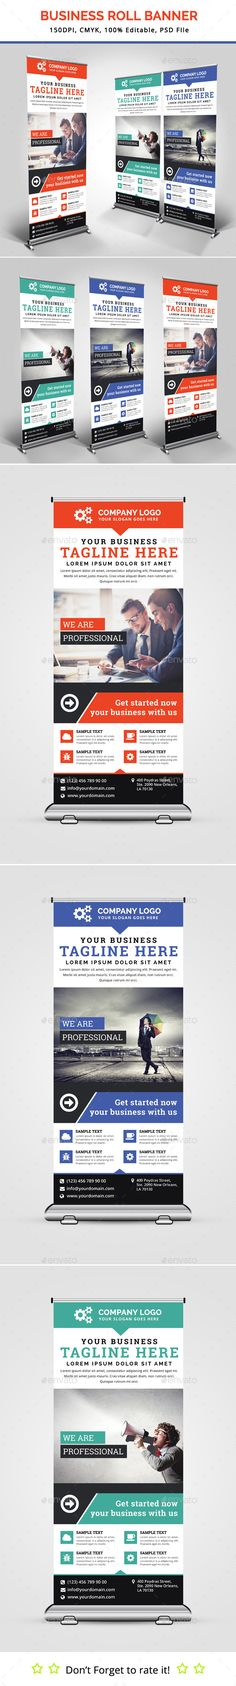 Business Roll Up Banner Template #design Download: http://graphicriver.net/item/business-roll-up-banner-v18/13201955?ref=ksioks